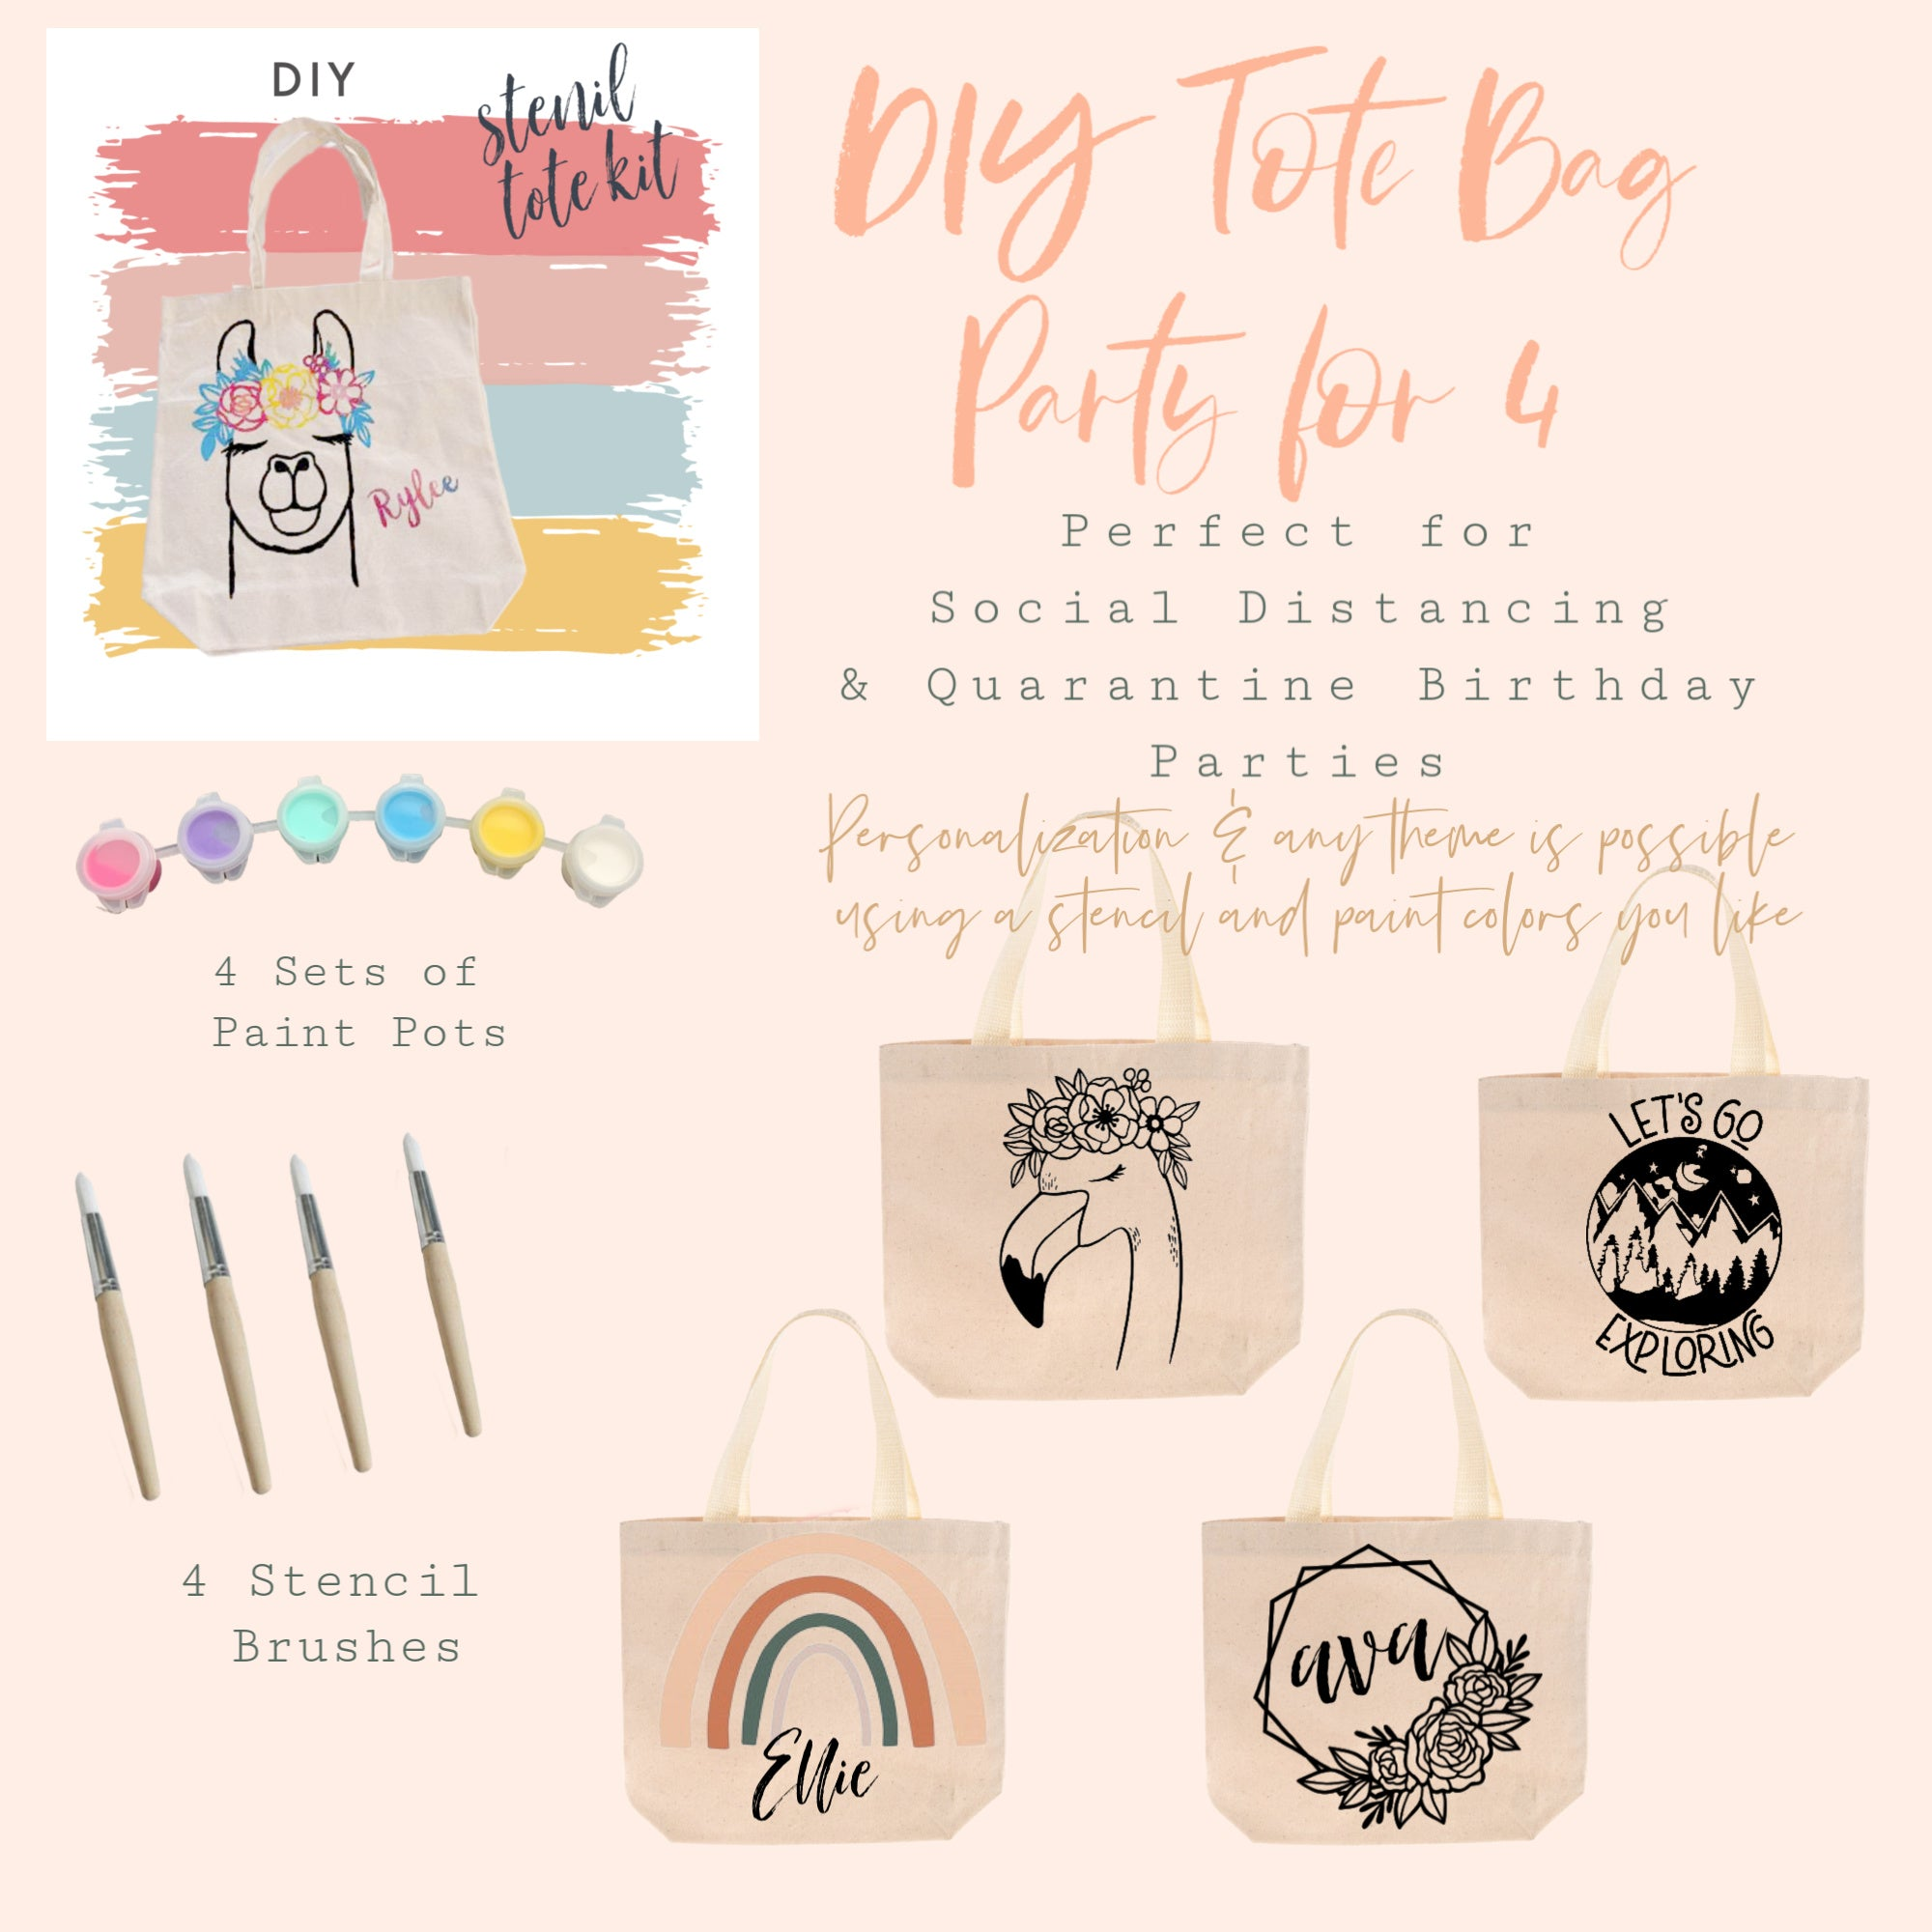 Party in a Box | DIY Kit | Tote Bag Party for 4